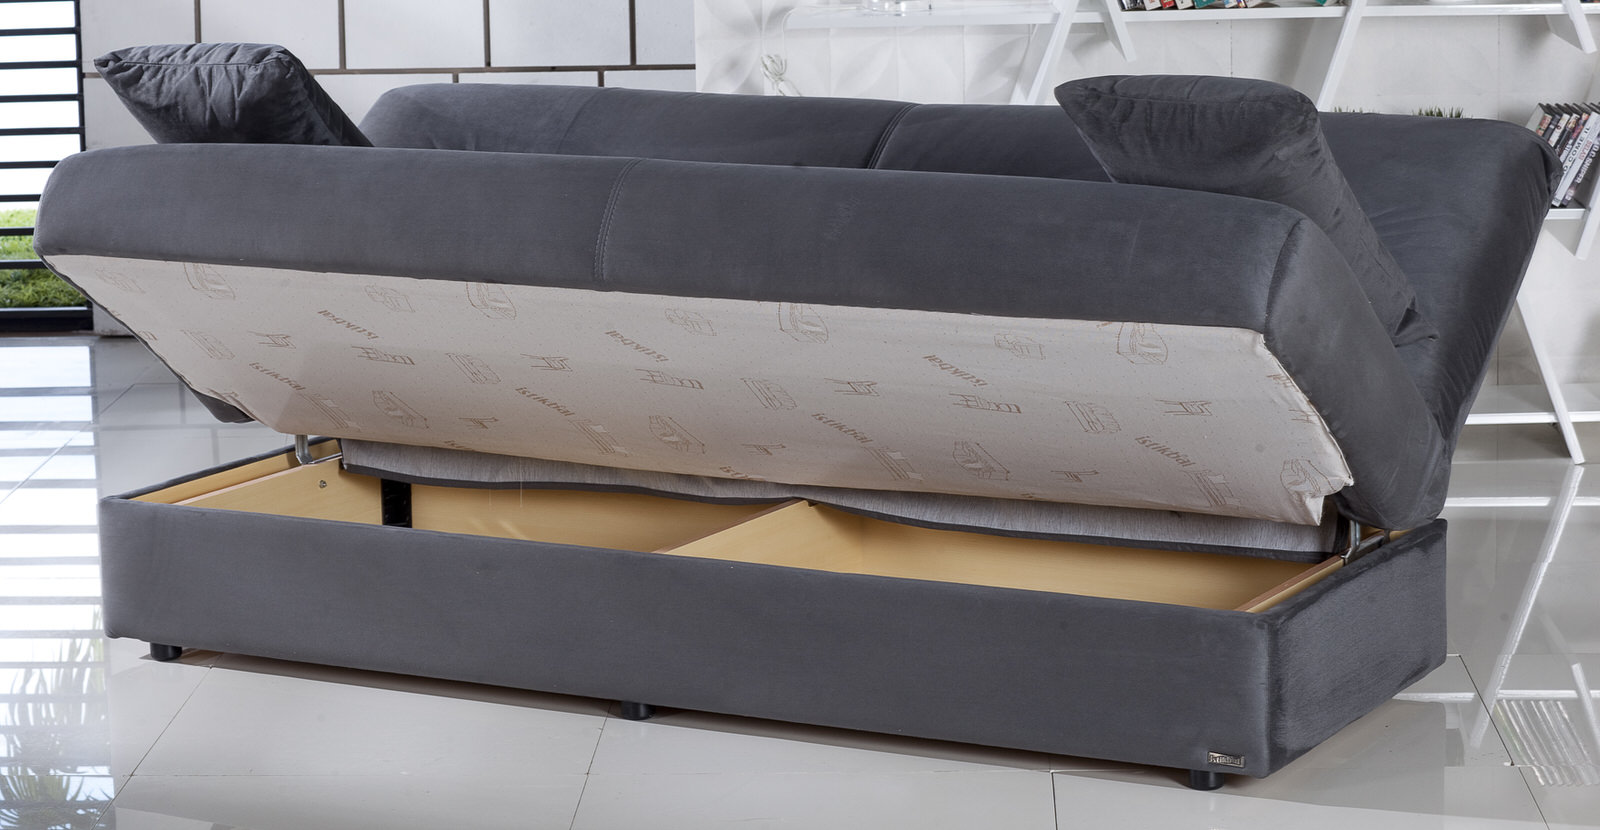 regata rainbow dark gray convertible sofa bed by sunset sunset istikbal